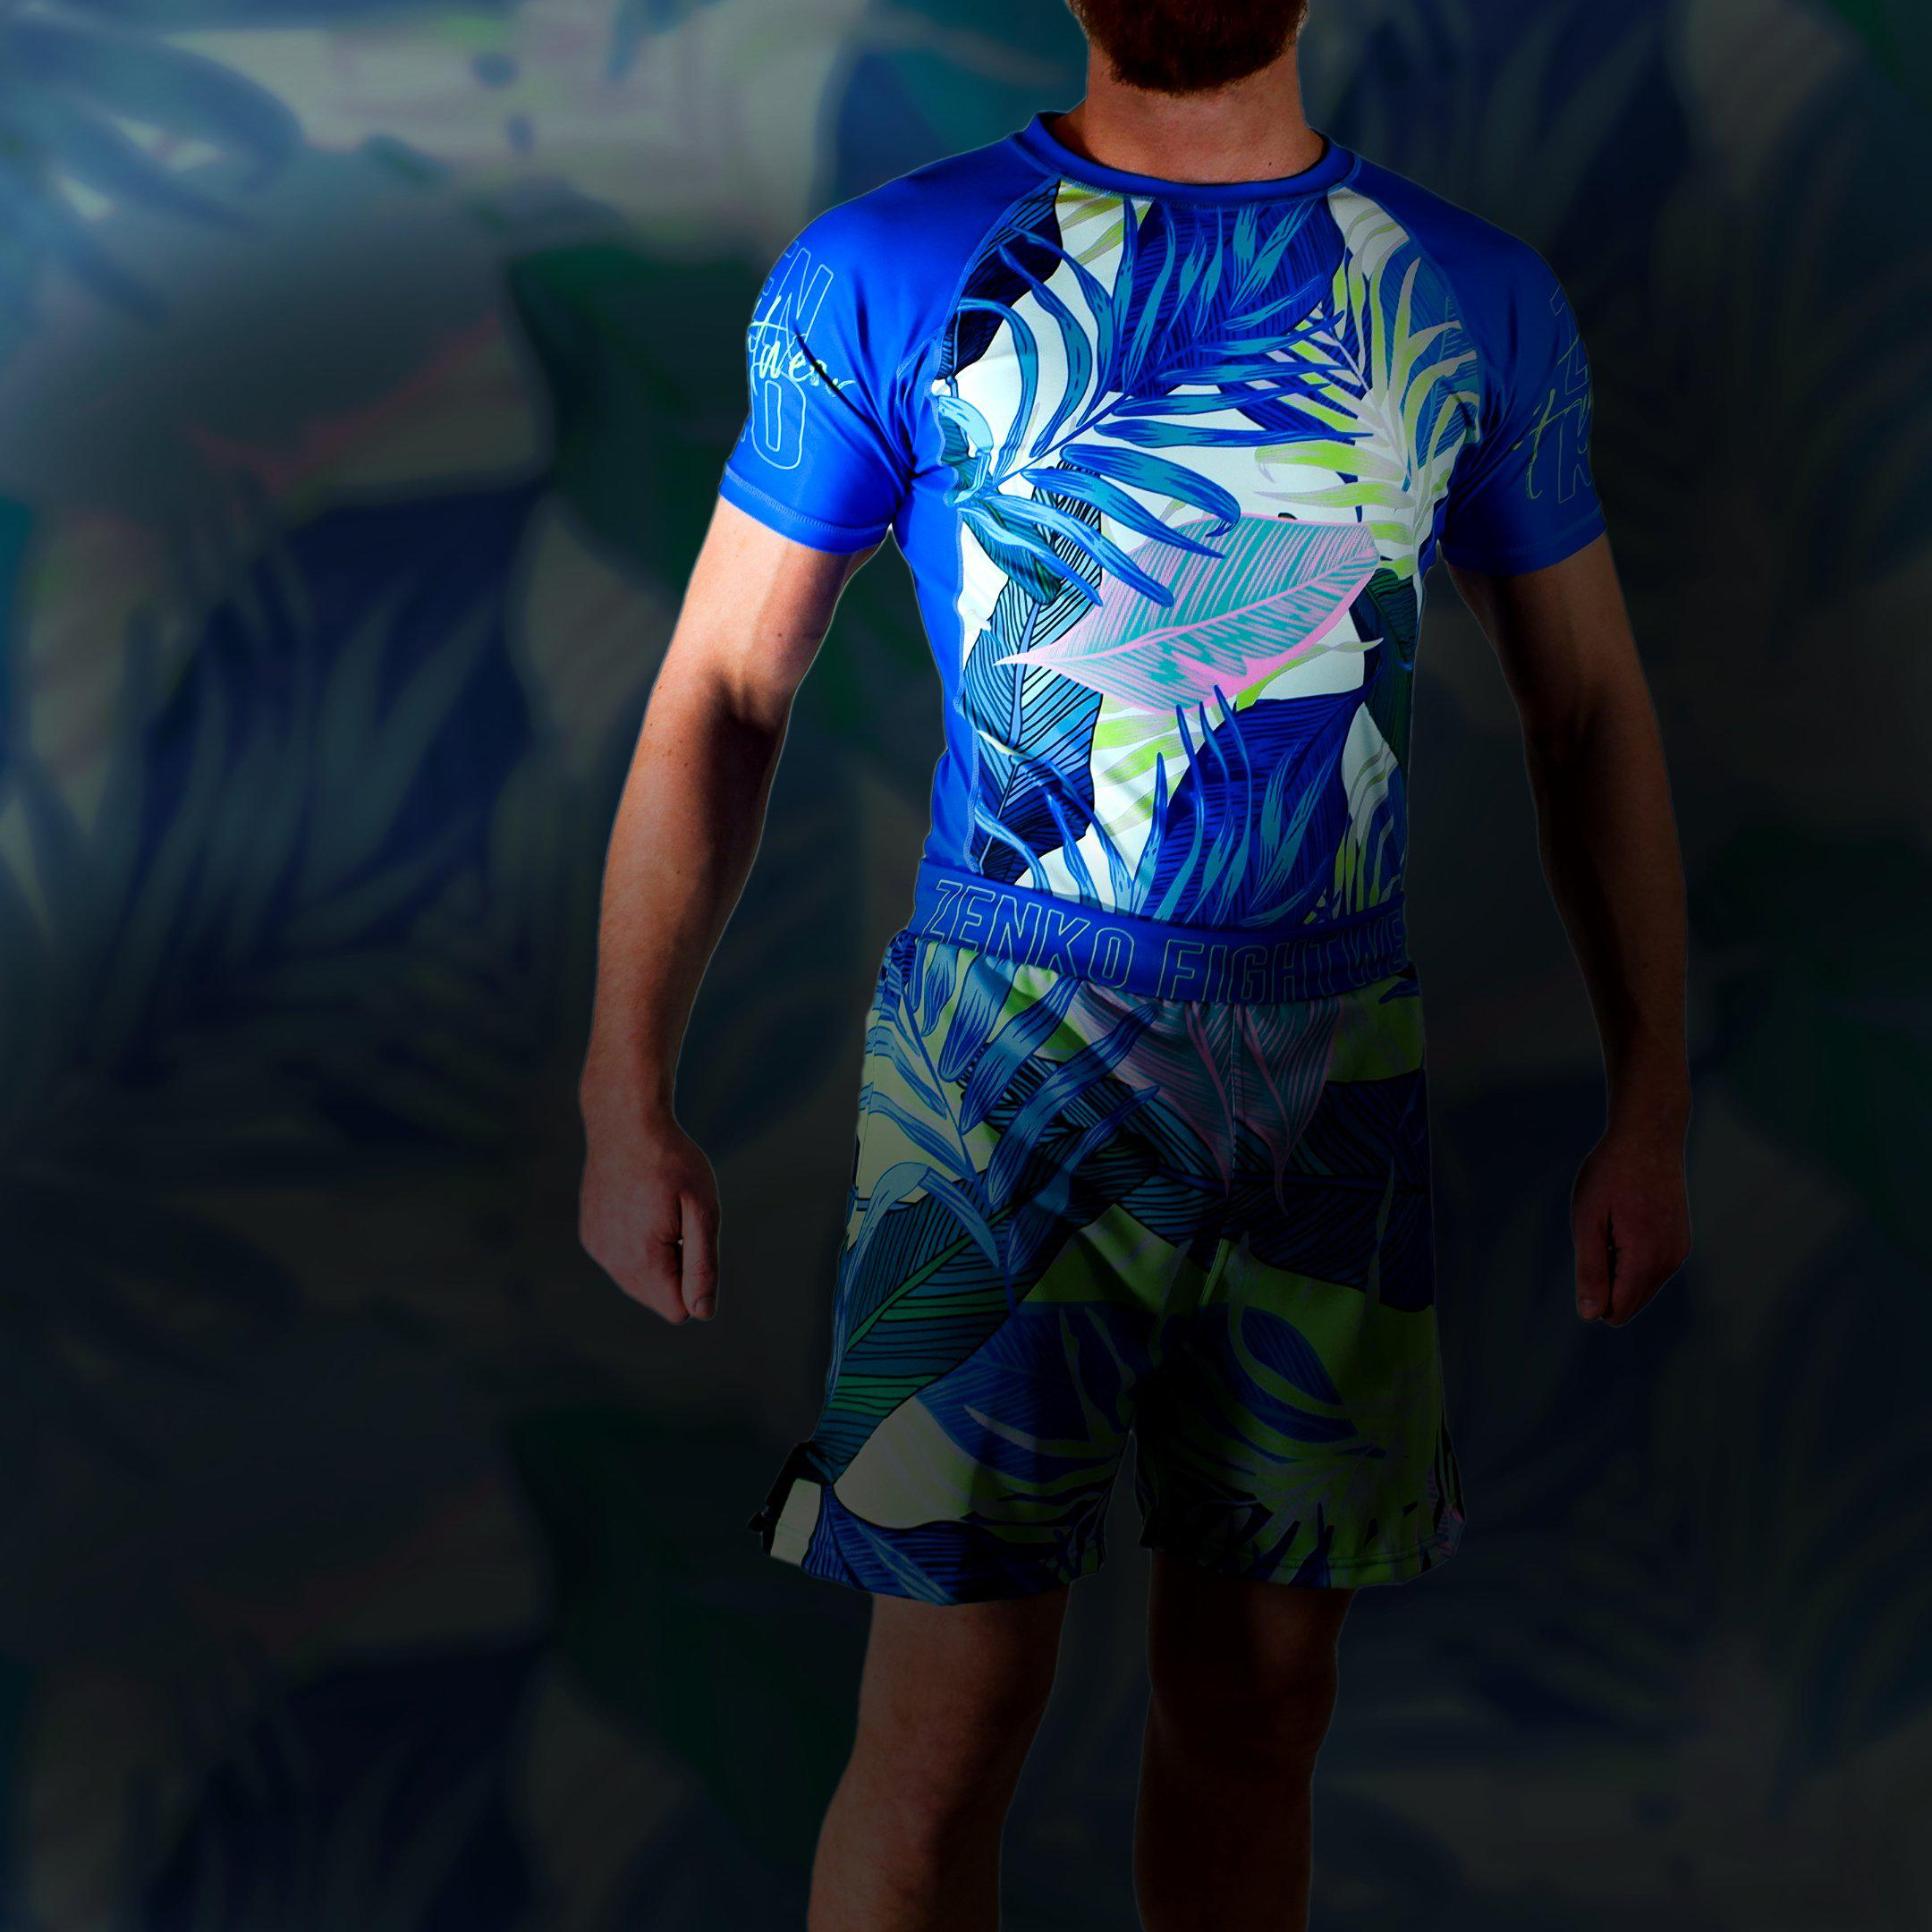 Zenko Fightwear Malibu Rashguard + Malibu Hybrid Fight Shorts